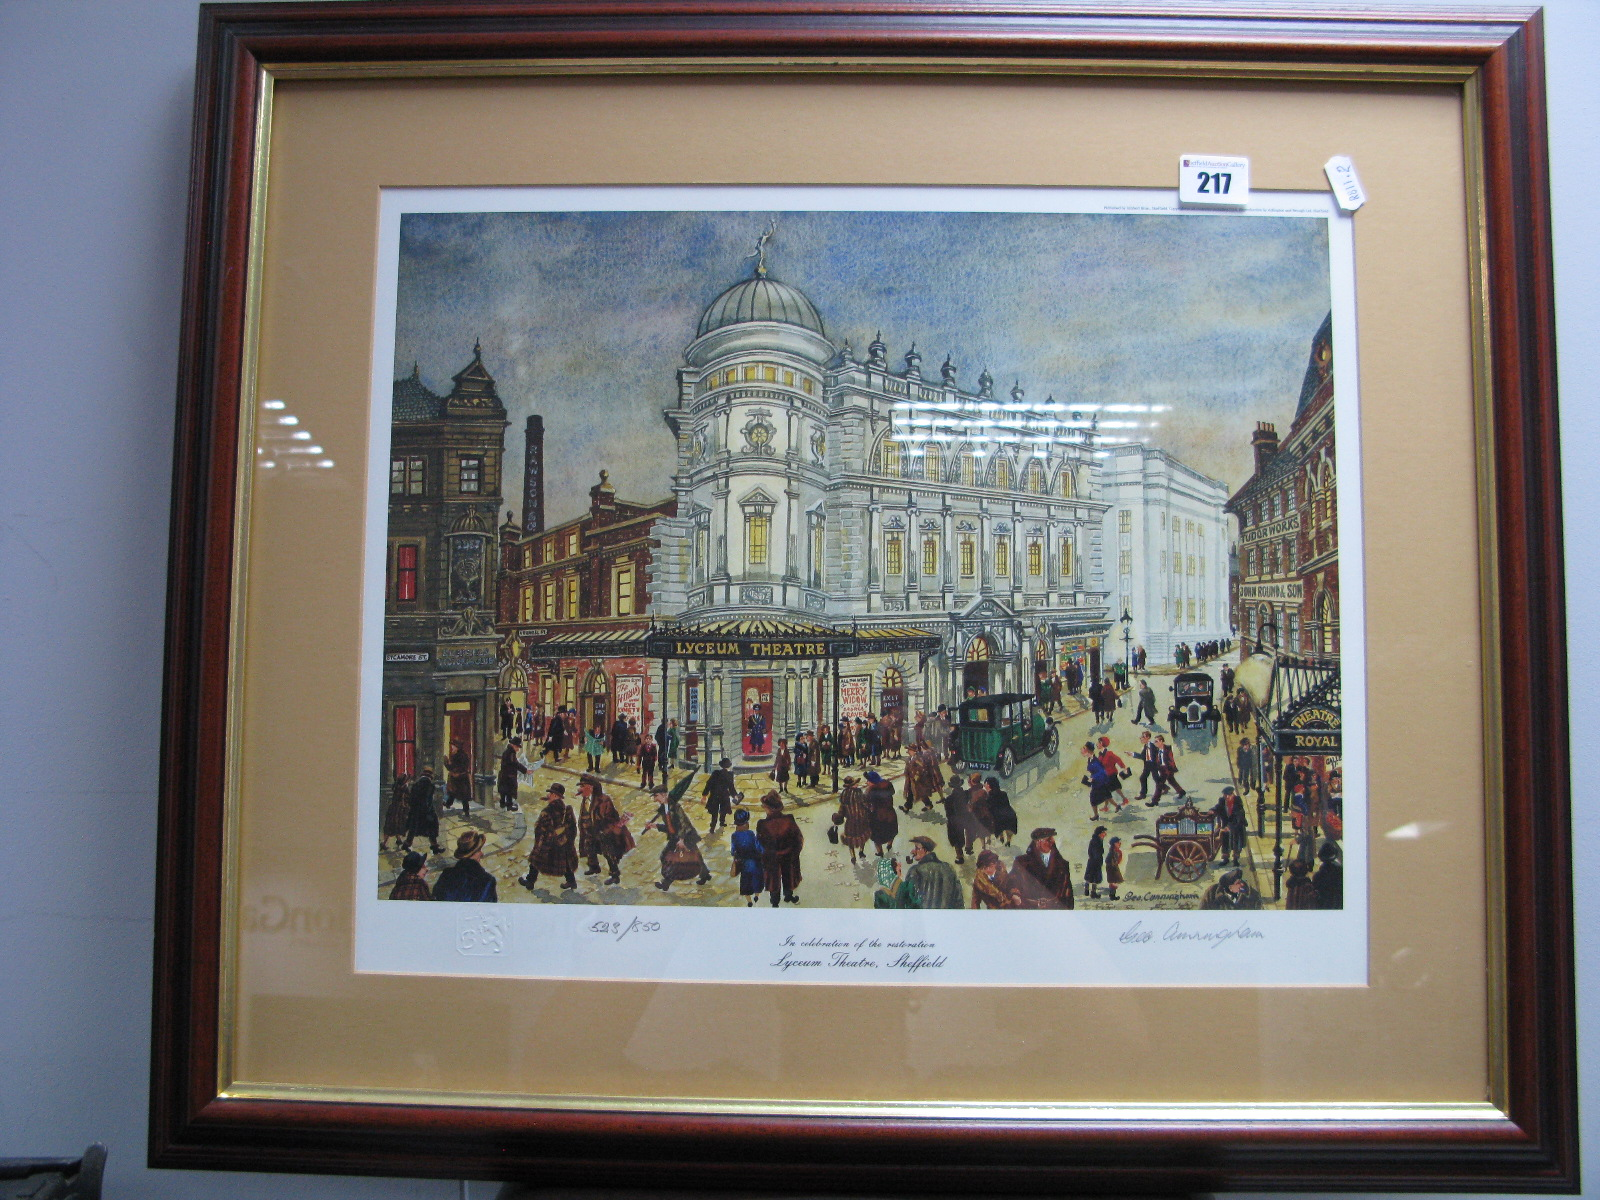 Lot 217 - George Cunningham 'Lyceum Theatre,Sheffield' Limited Edition Colour Print of 850, graphite signed,